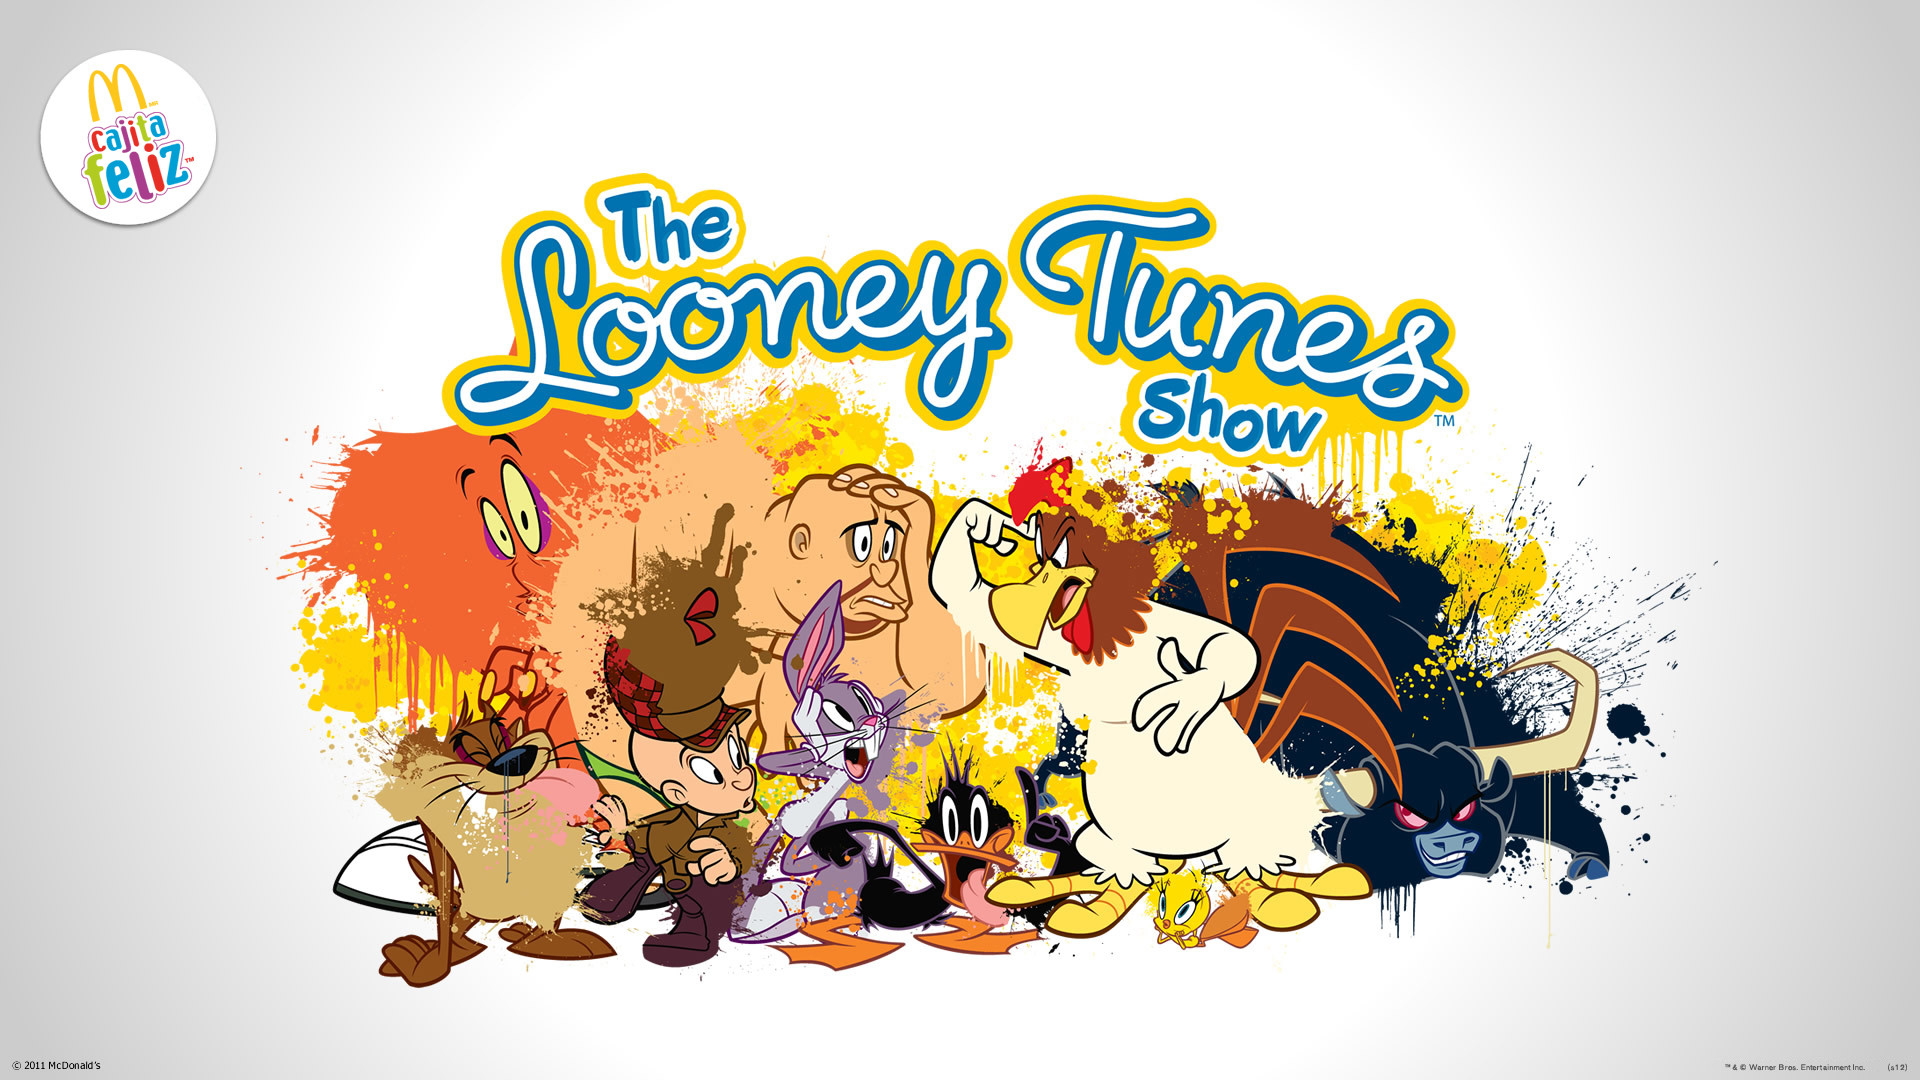 1920x1080 Looney Tunes Cartoon - Wallpaper, High Definition, High Quality .